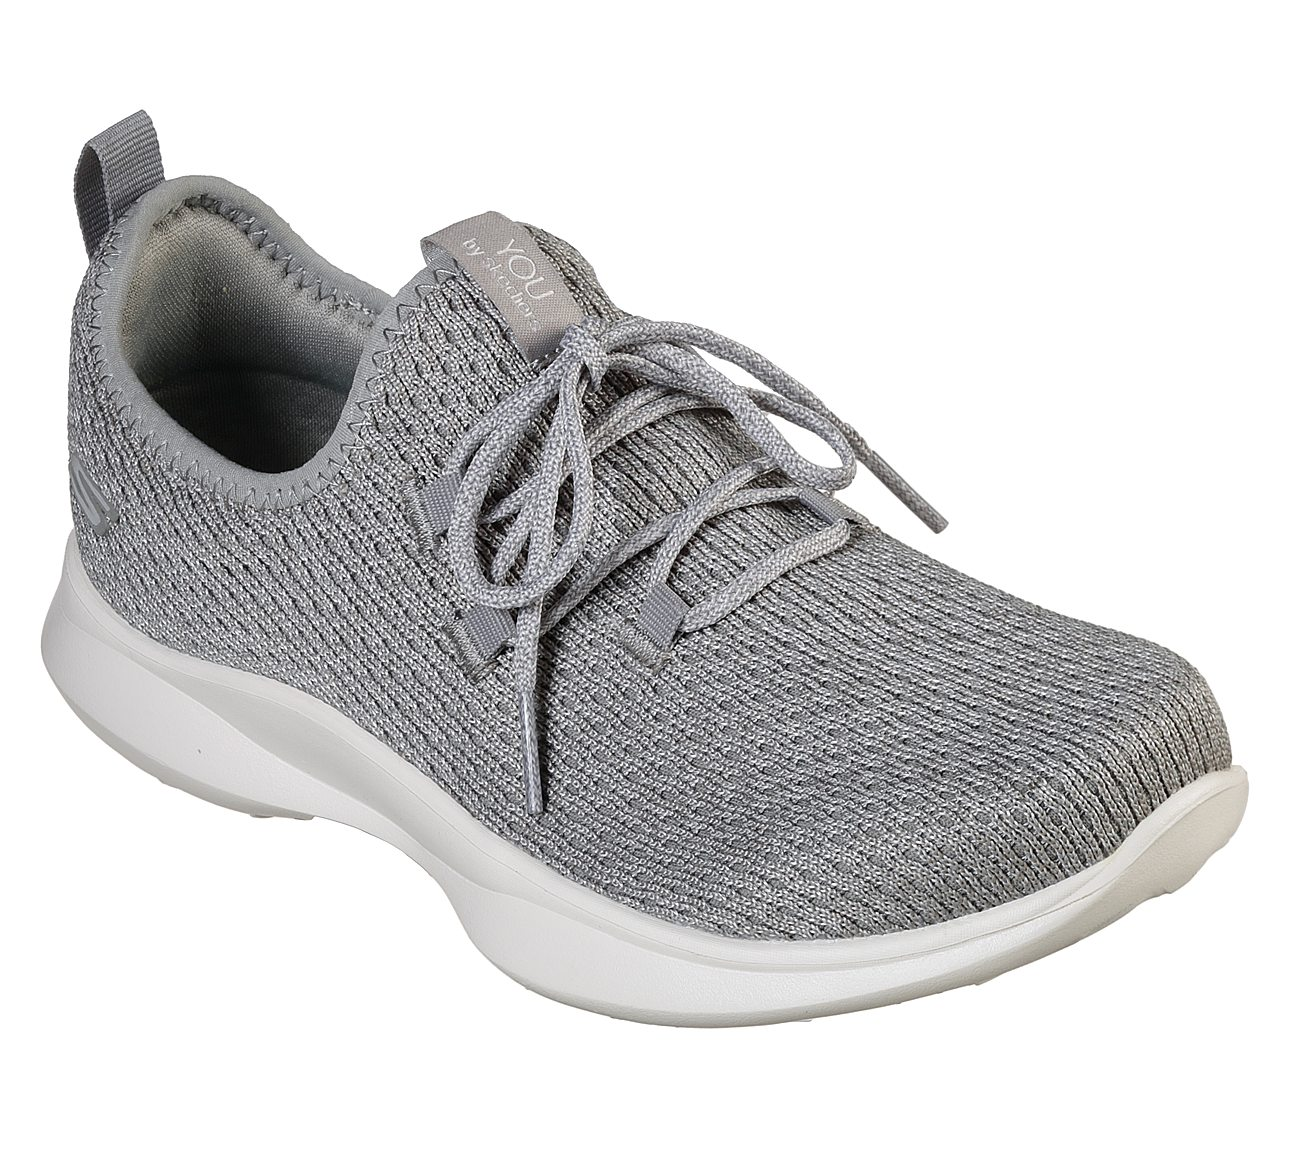 skechers outdoor lifestyle shoes